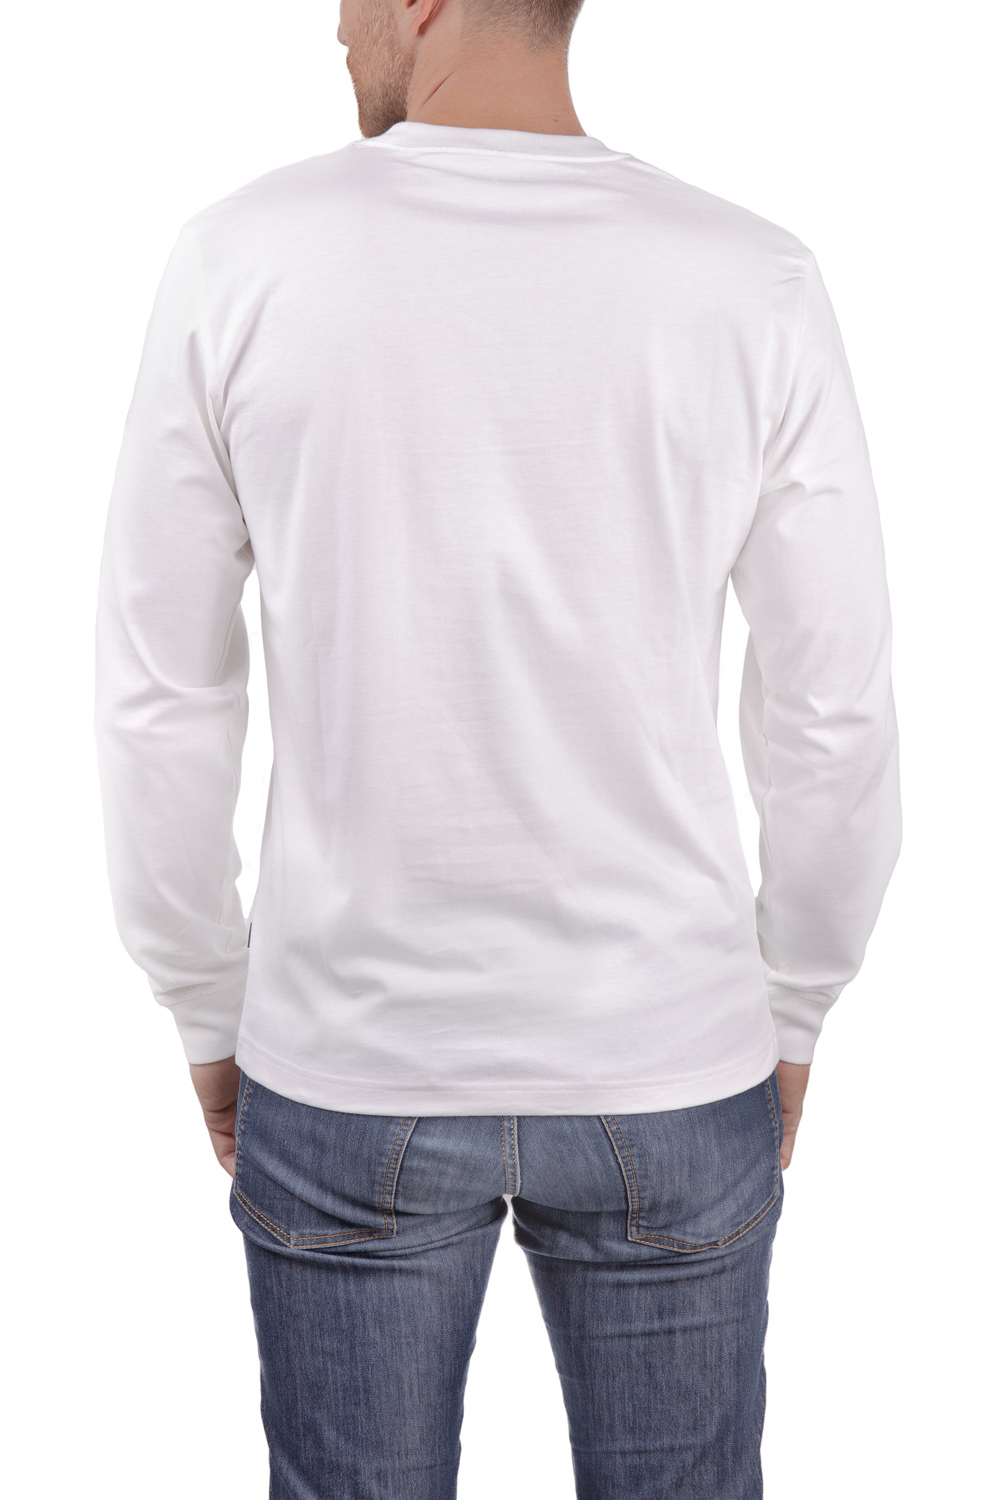 Converse white men´s t-shirt Erx Ls tee